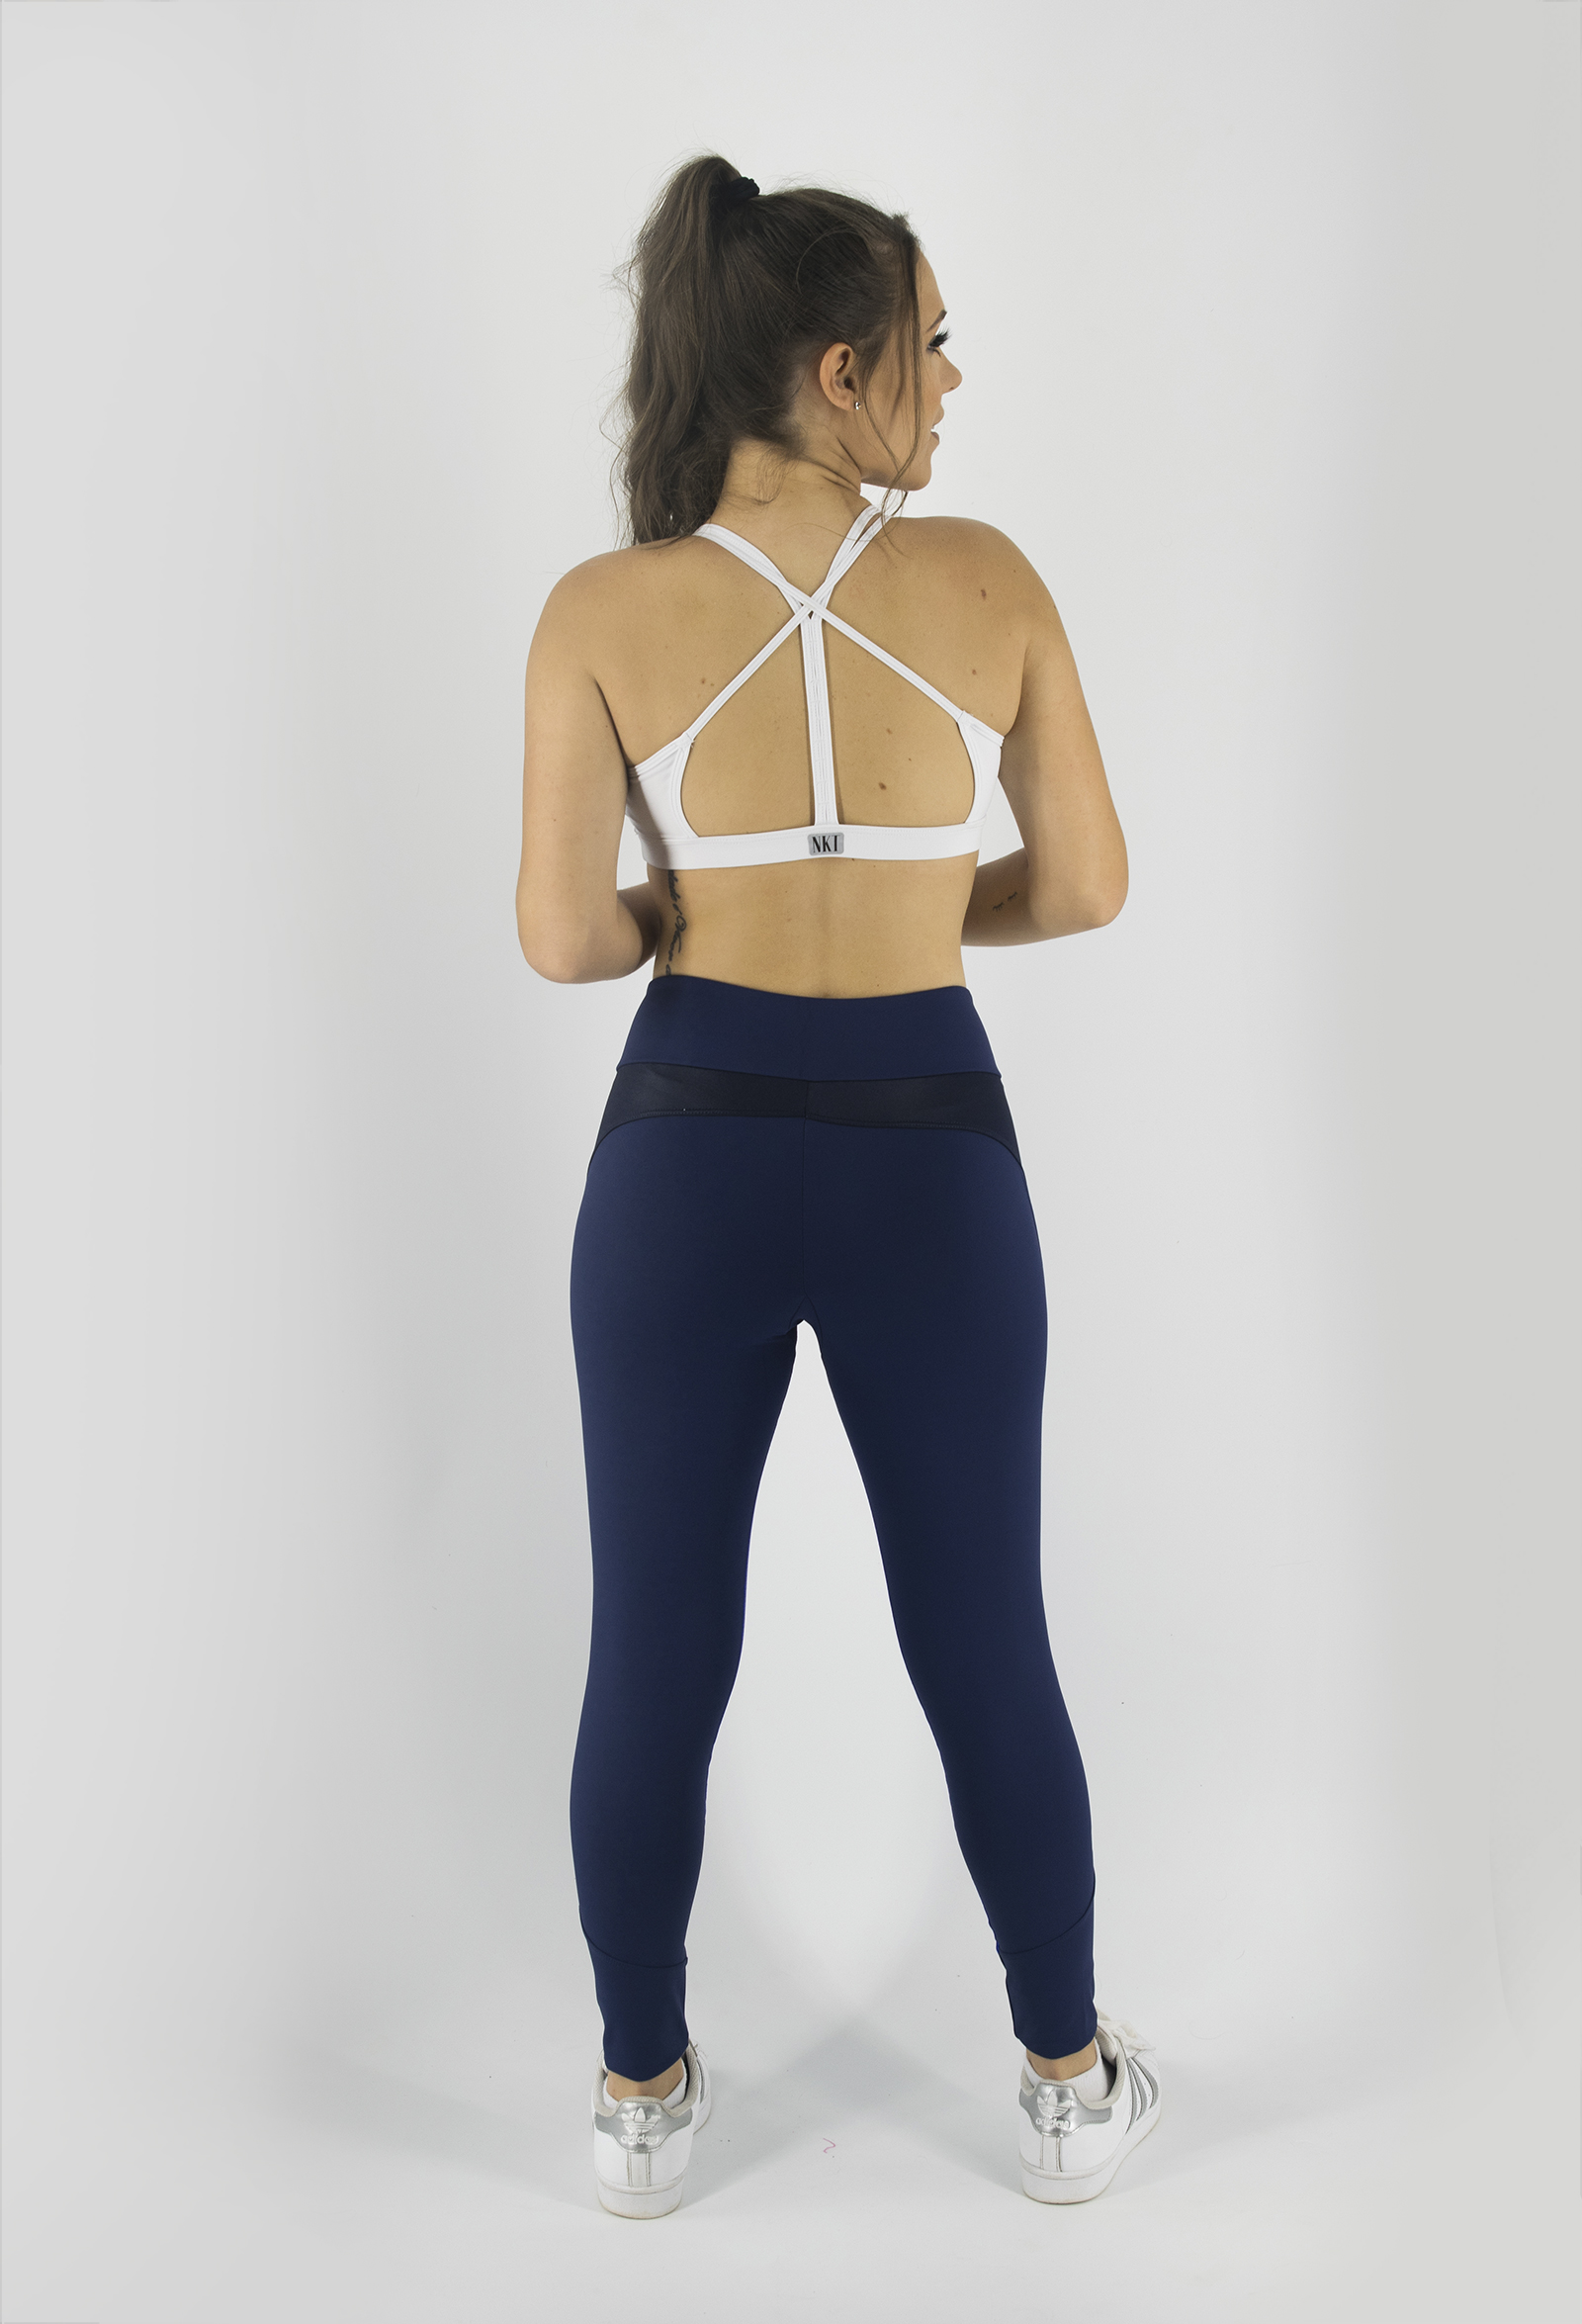 Top Bring Branco, Coleção Just For You - NKT Fitwear Moda Fitness